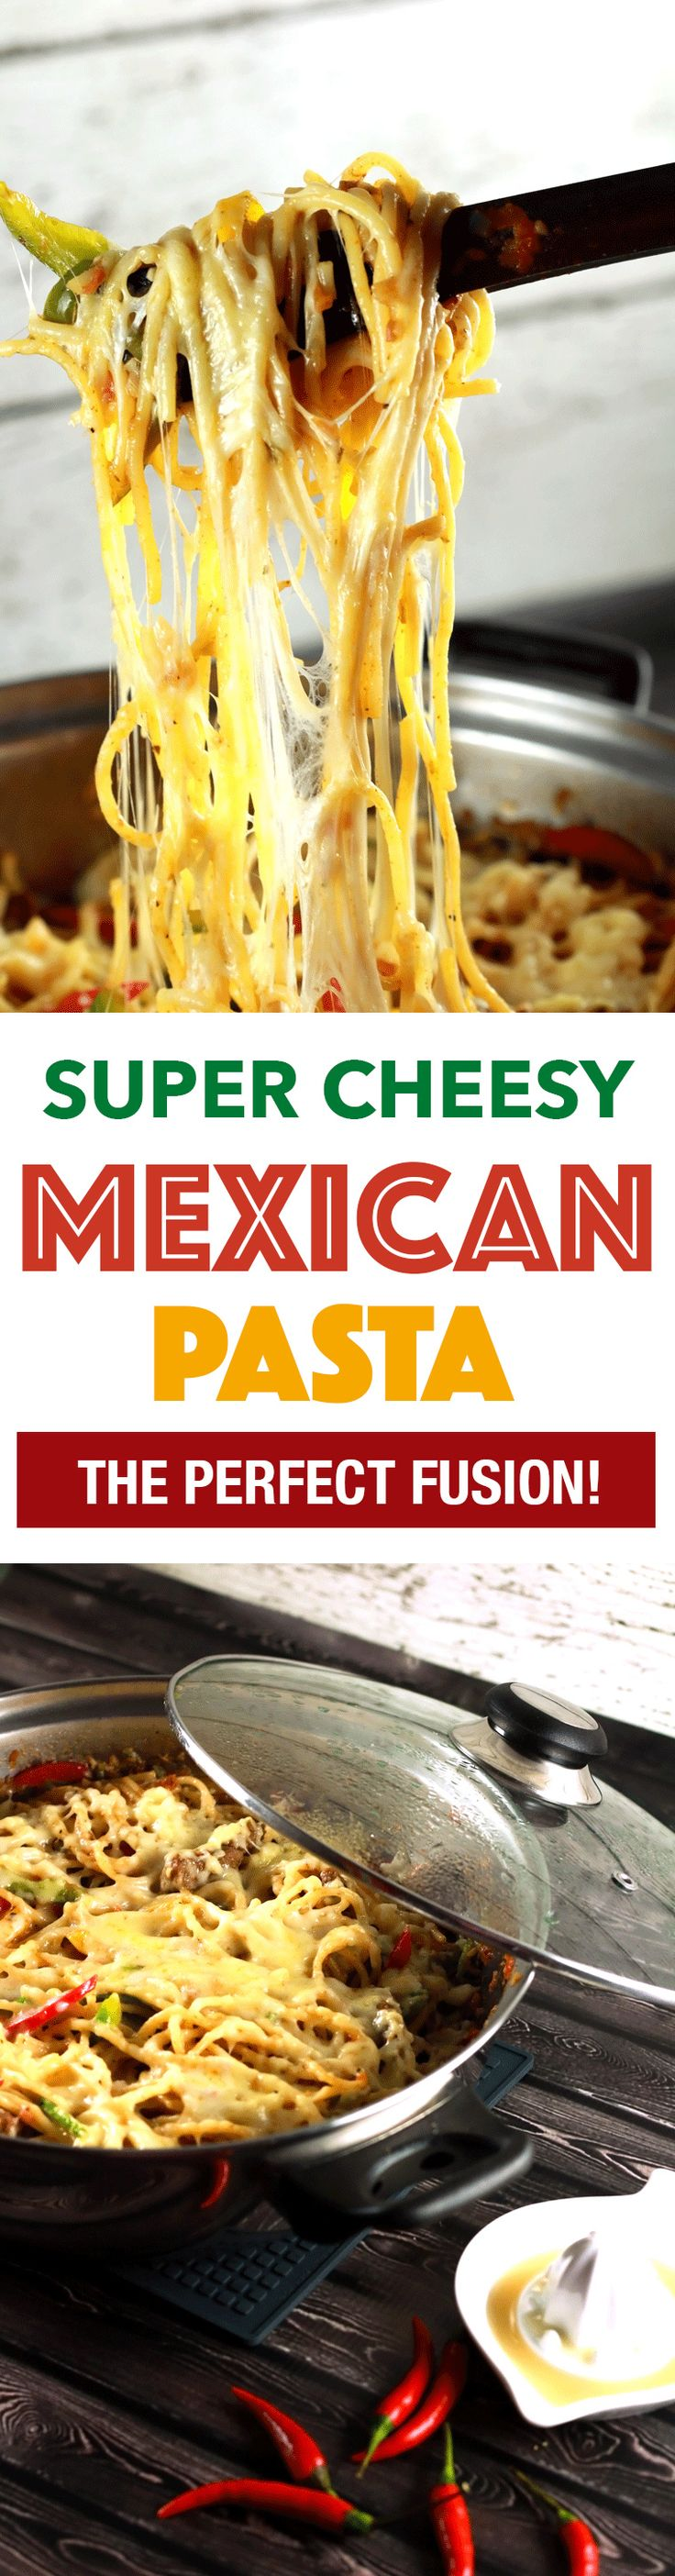 Who doesn't love pasta?! And who doesn't like Mexican food?! Put the two together and we have the most delicious pasta recipe ever!! It's super easy to make yet tastes like you put hours into it! | ScrambledChefs.com